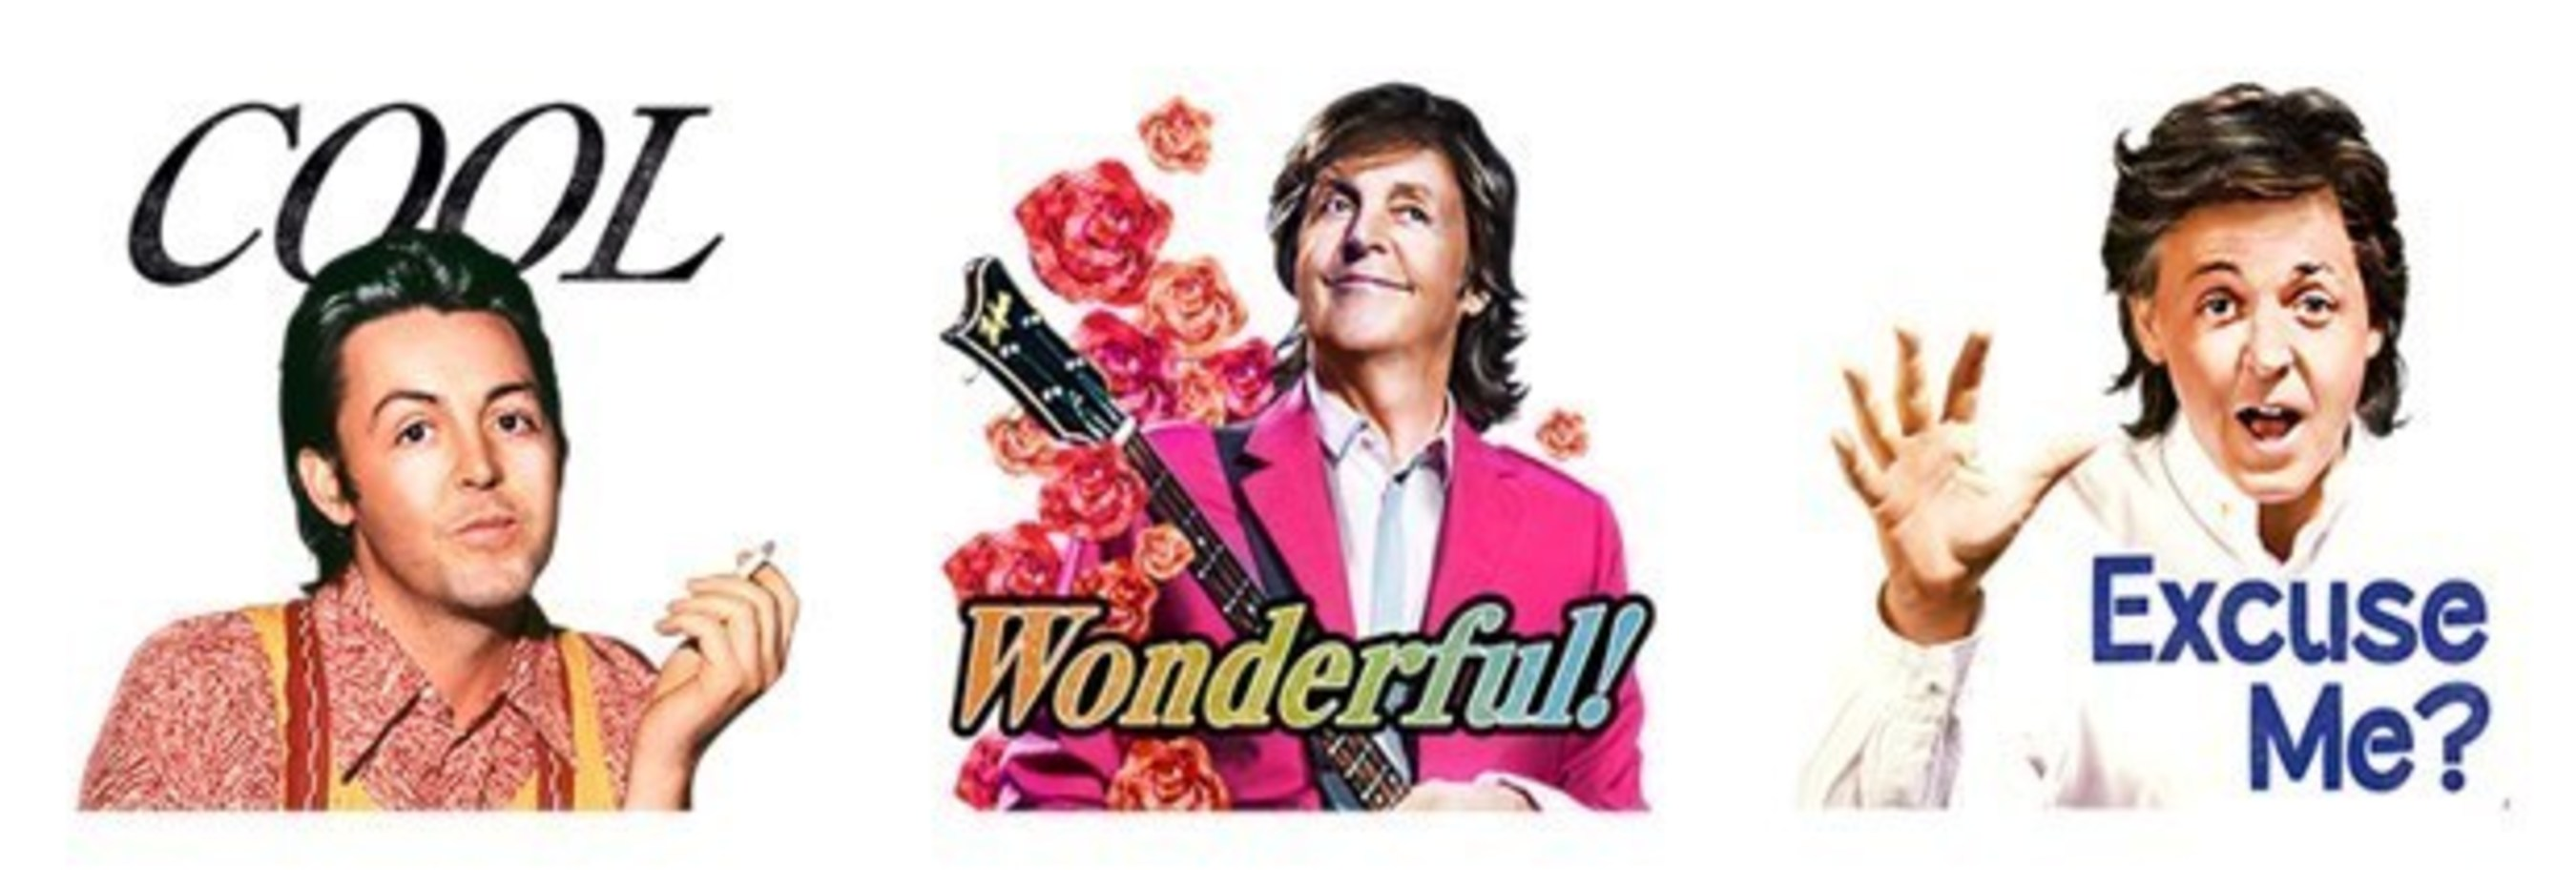 Paul McCartney Sound LINE Stickers